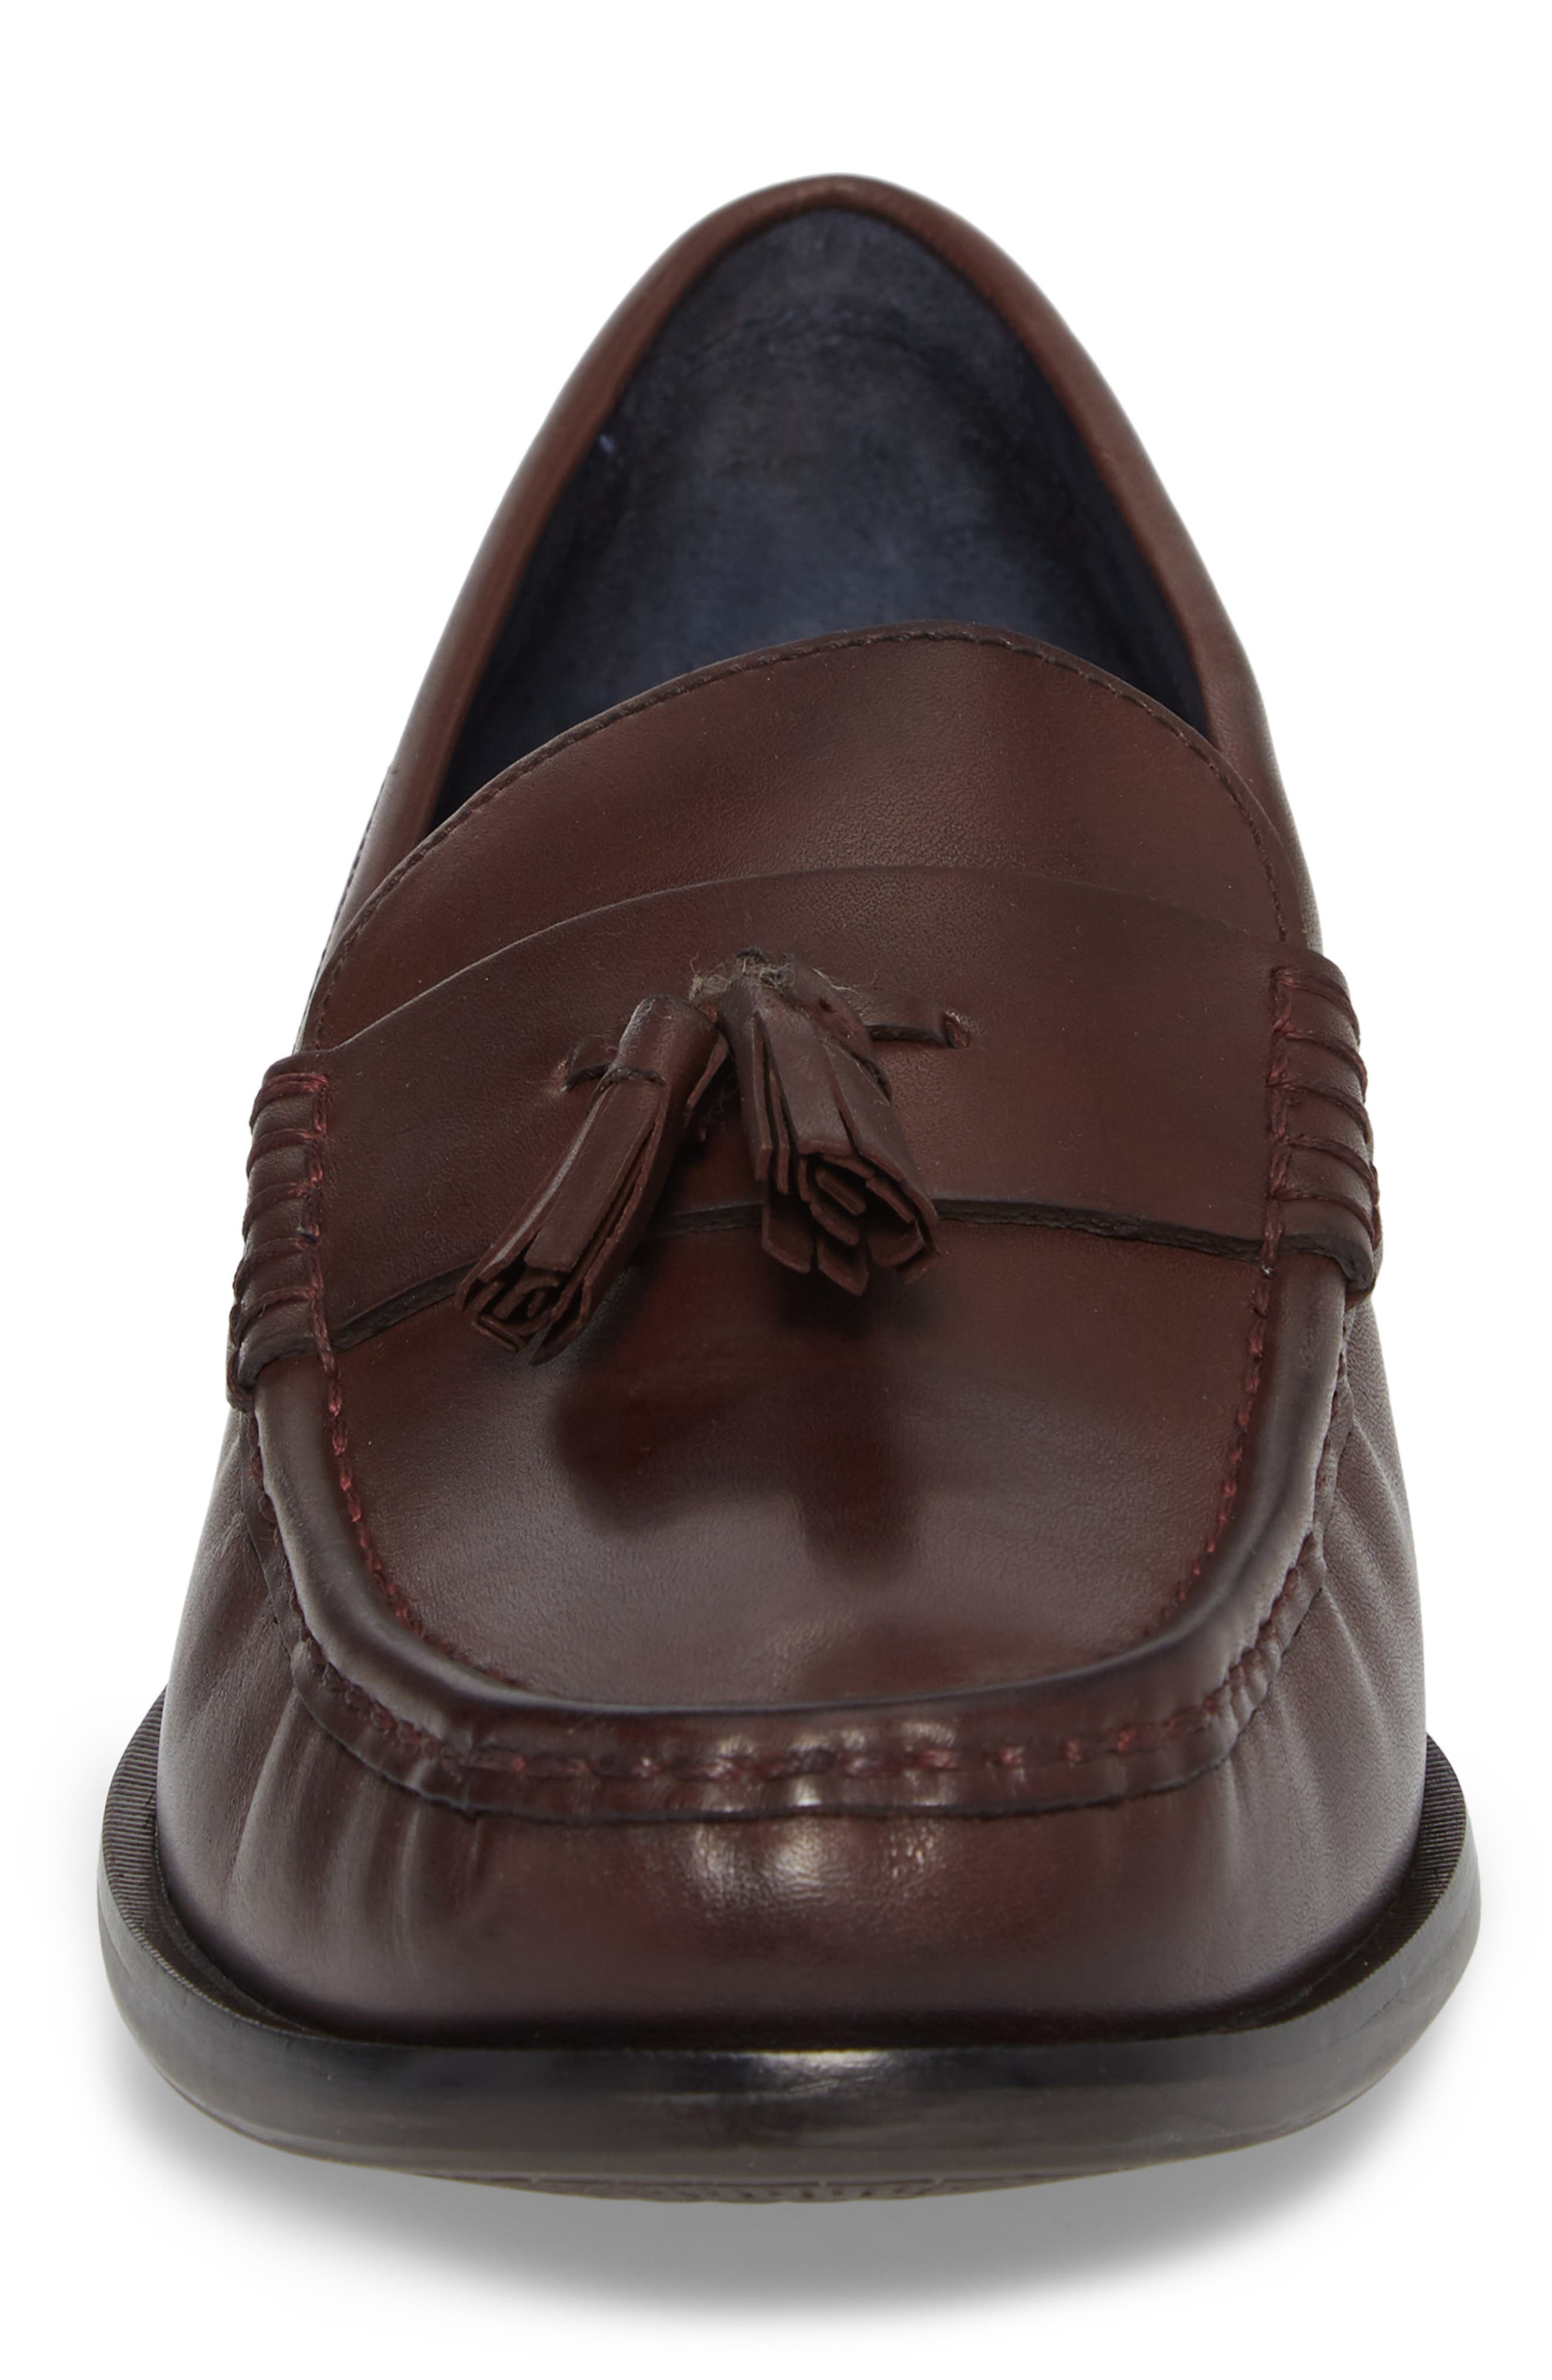 COLE HAAN, Pinch Friday Tassel Loafer, Alternate thumbnail 4, color, BURGUNDY LEATHER